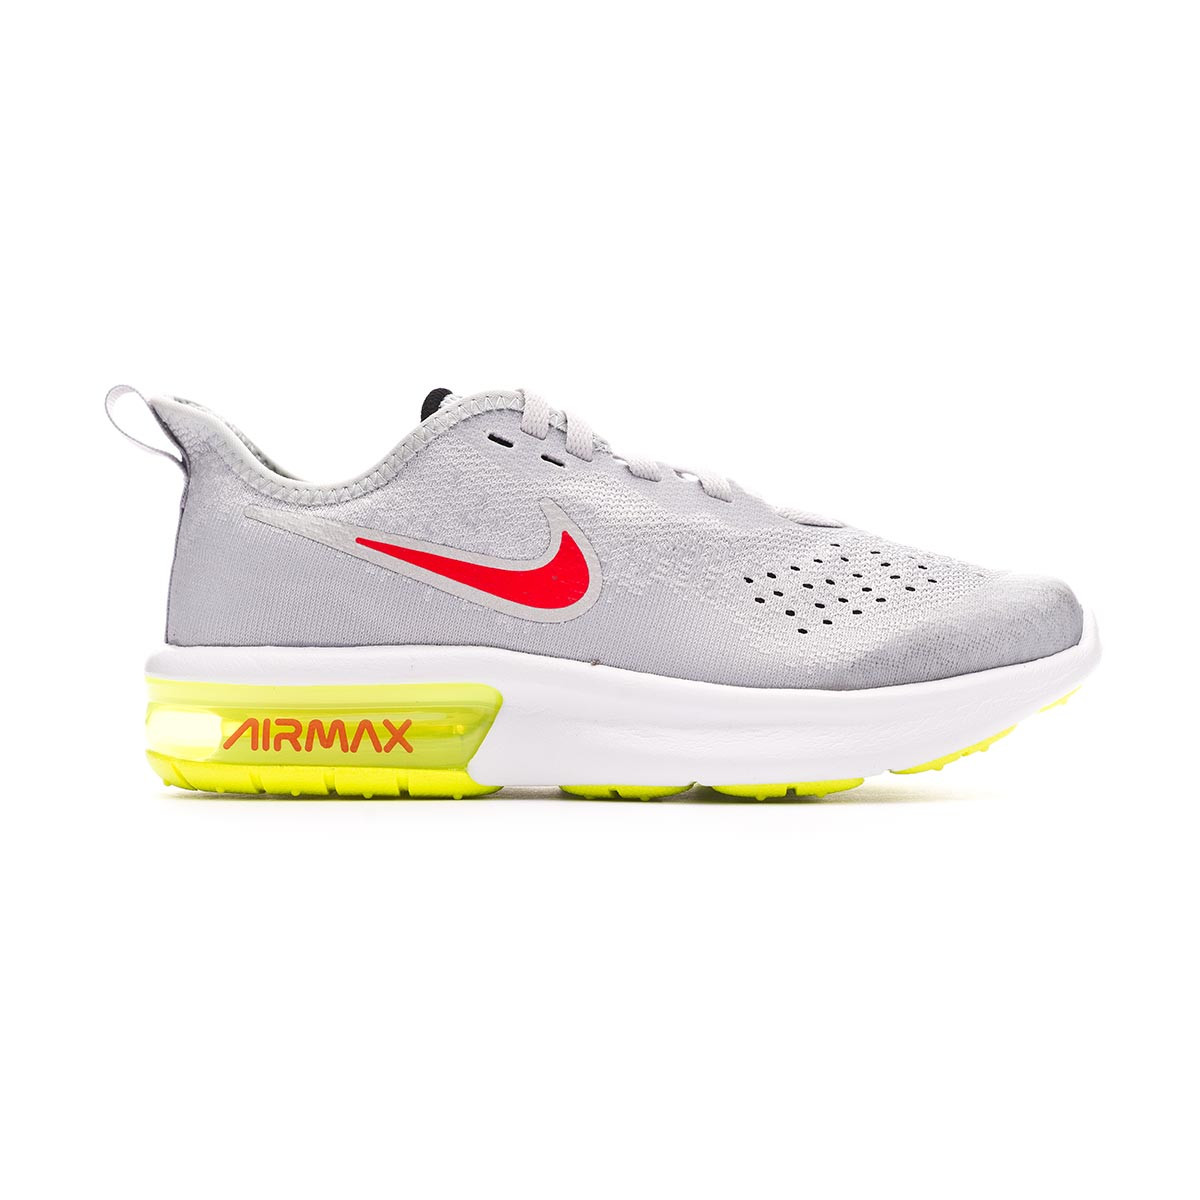 Sapatilha Nike Air Max Sequent 4 Niño